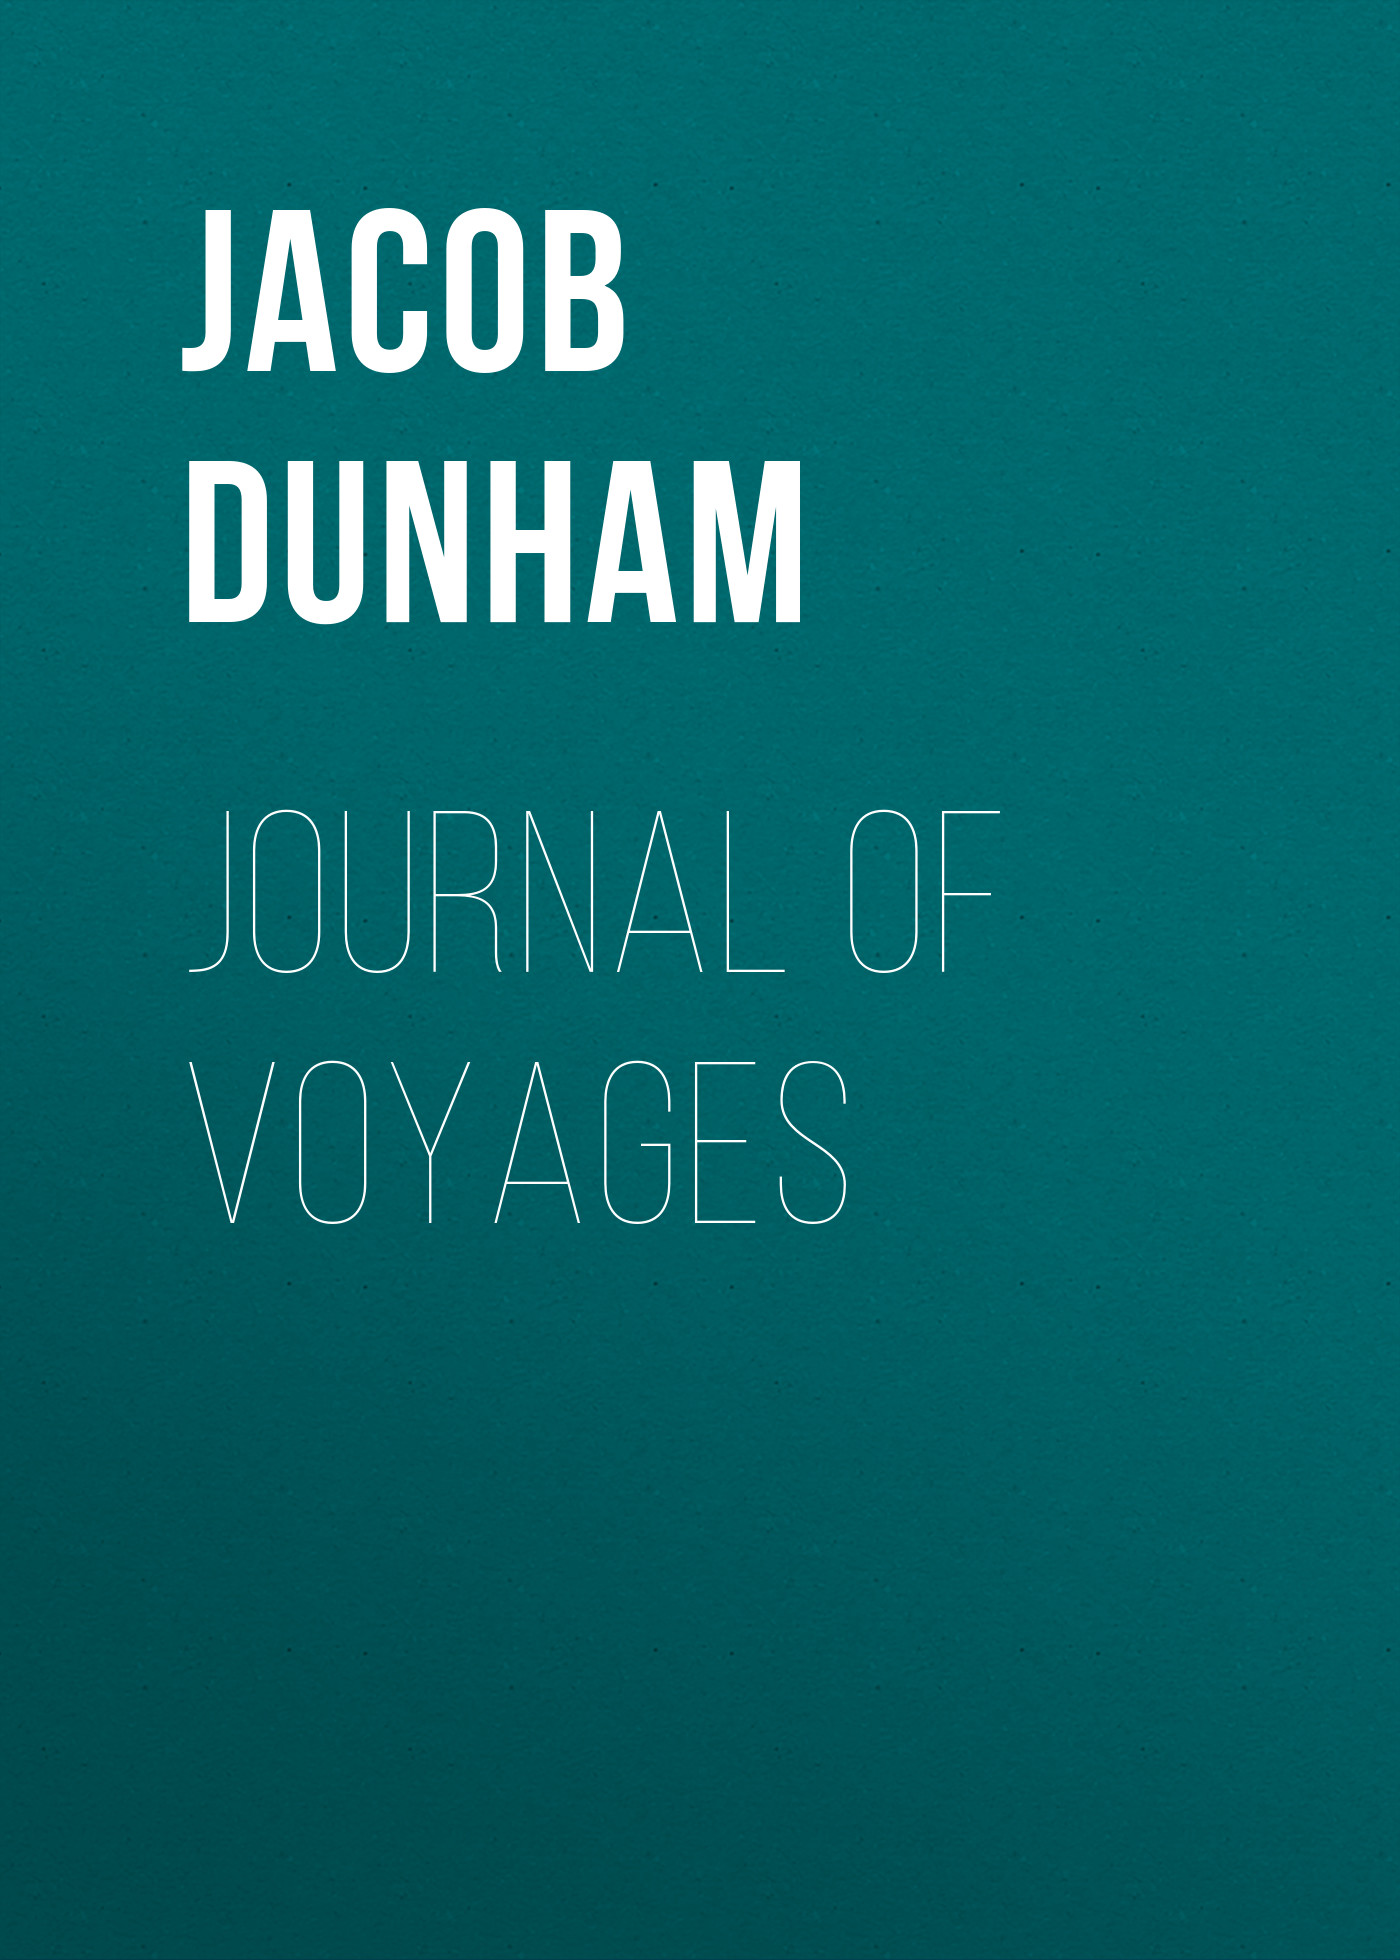 Jacob Dunham Journal of Voyages